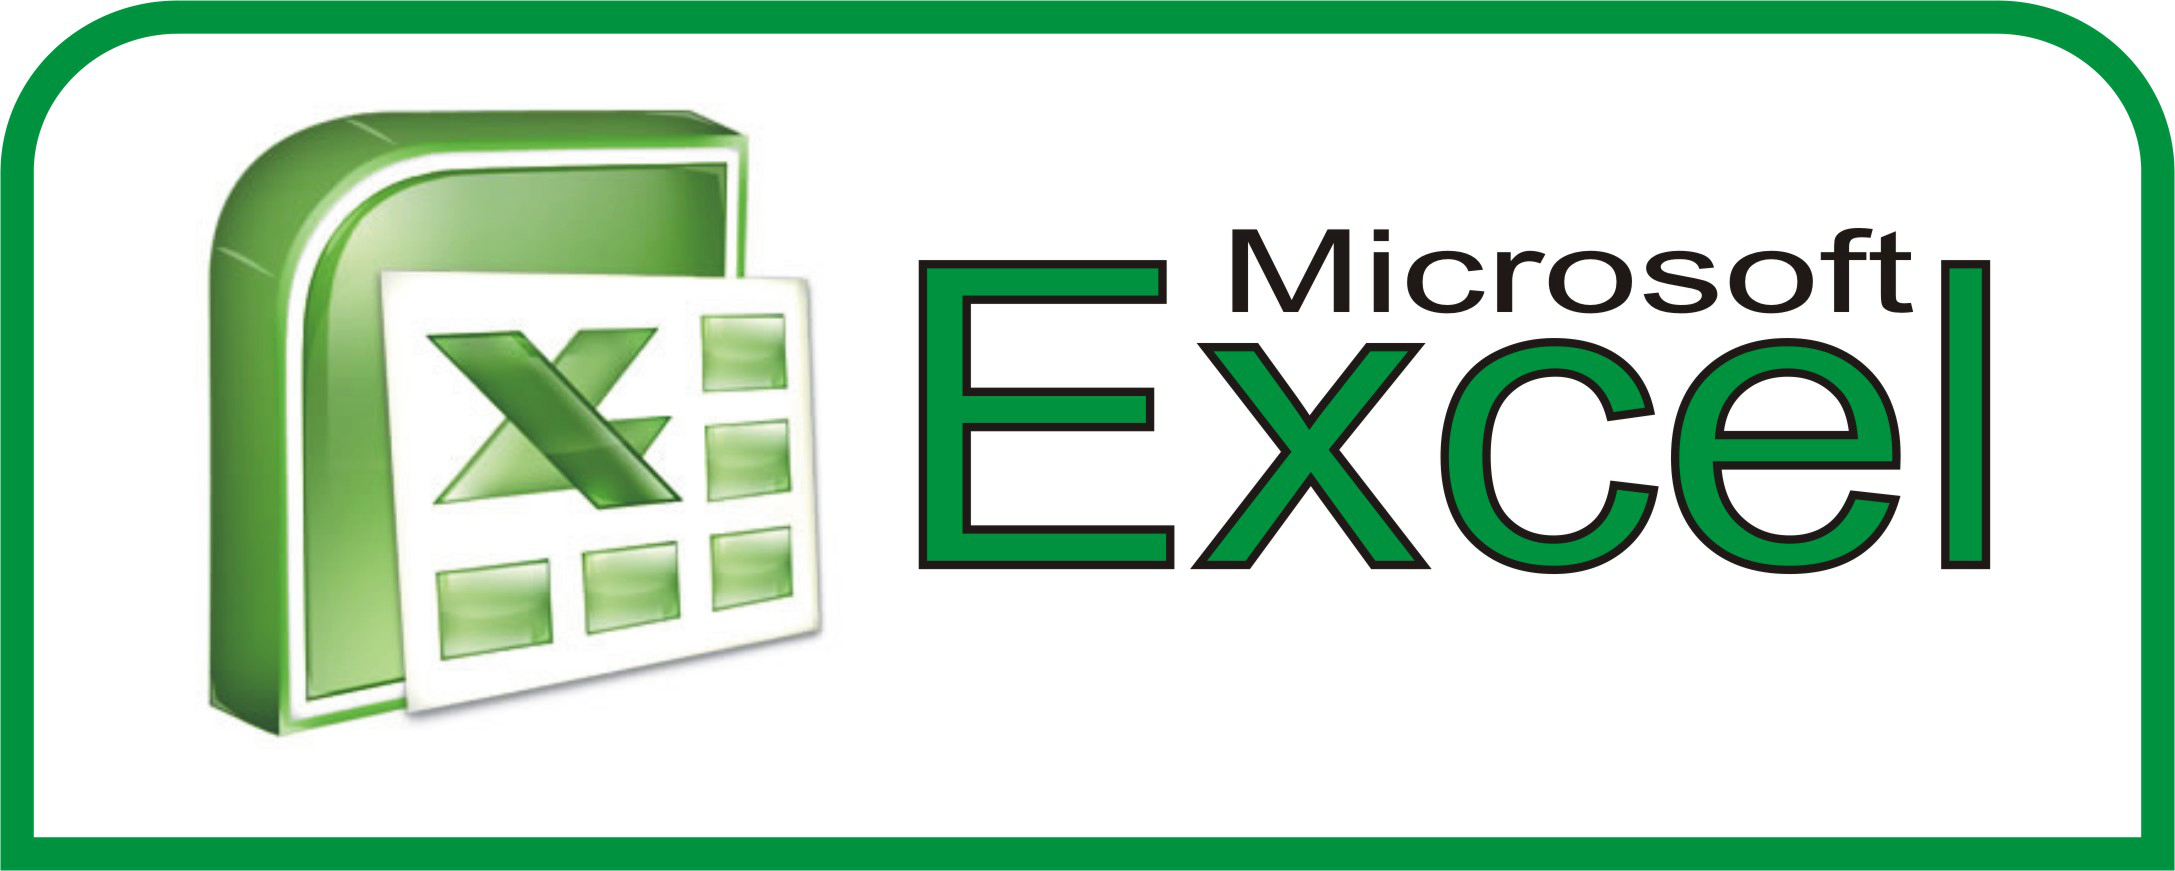 Ediblewildsus  Winning  Excel Shortcuts You Probably Didnt Know About  Techdissected With Handsome Round Up Excel Besides Excel Find Duplicate Rows Furthermore Fv Function Excel With Divine Excel Lock Column Also Excel Equipment In Addition Save As Shortcut Excel And How To Add Dates In Excel As Well As How To Change X Axis Values In Excel Additionally How To Calculate Weighted Average In Excel From Techdissectedcom With Ediblewildsus  Handsome  Excel Shortcuts You Probably Didnt Know About  Techdissected With Divine Round Up Excel Besides Excel Find Duplicate Rows Furthermore Fv Function Excel And Winning Excel Lock Column Also Excel Equipment In Addition Save As Shortcut Excel From Techdissectedcom